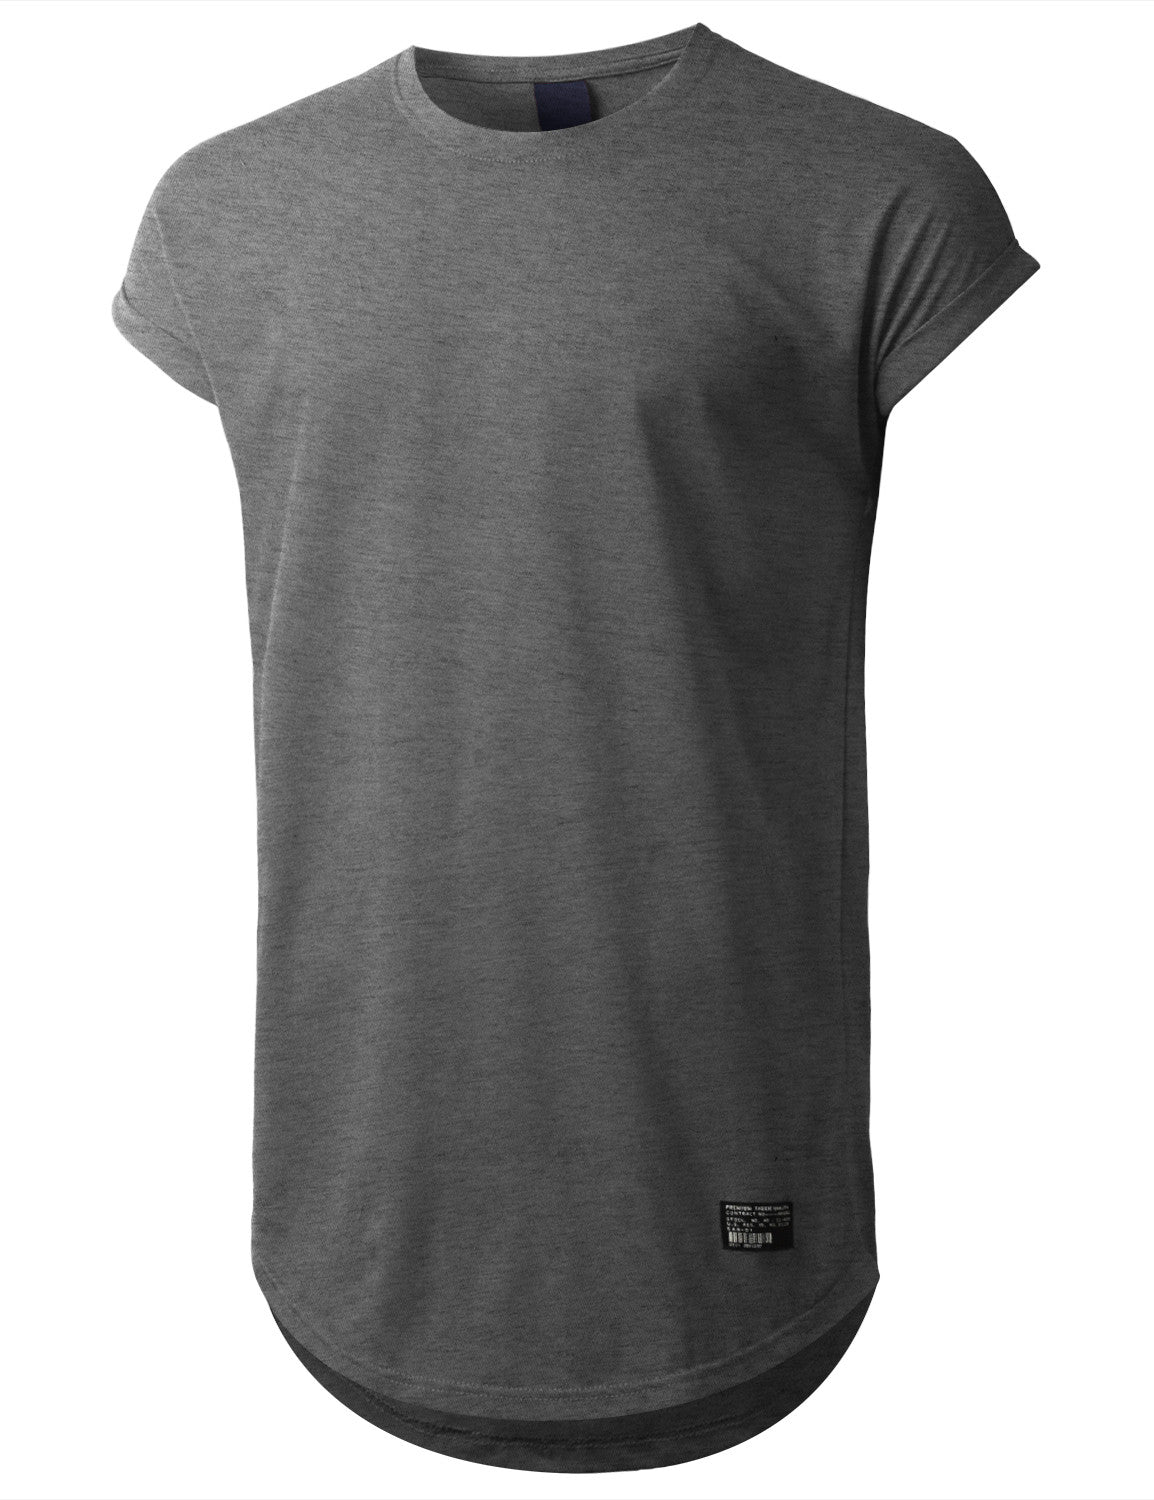 CHARCOAL Drop Shoulder Longline T-shirt - URBANCREWS